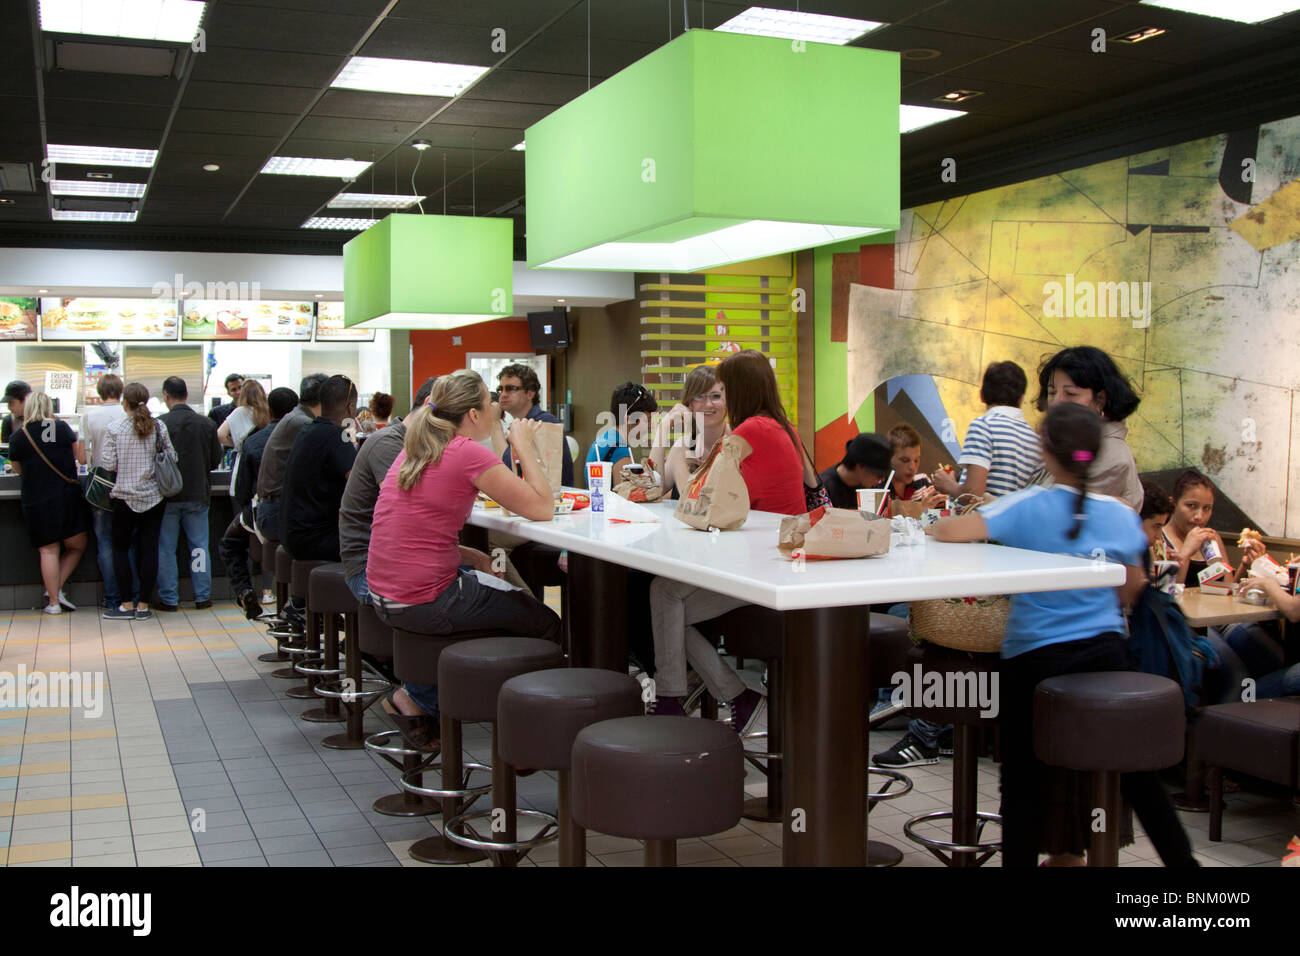 Mcdonalds Restaurant - Camden Town - London - Stock Image